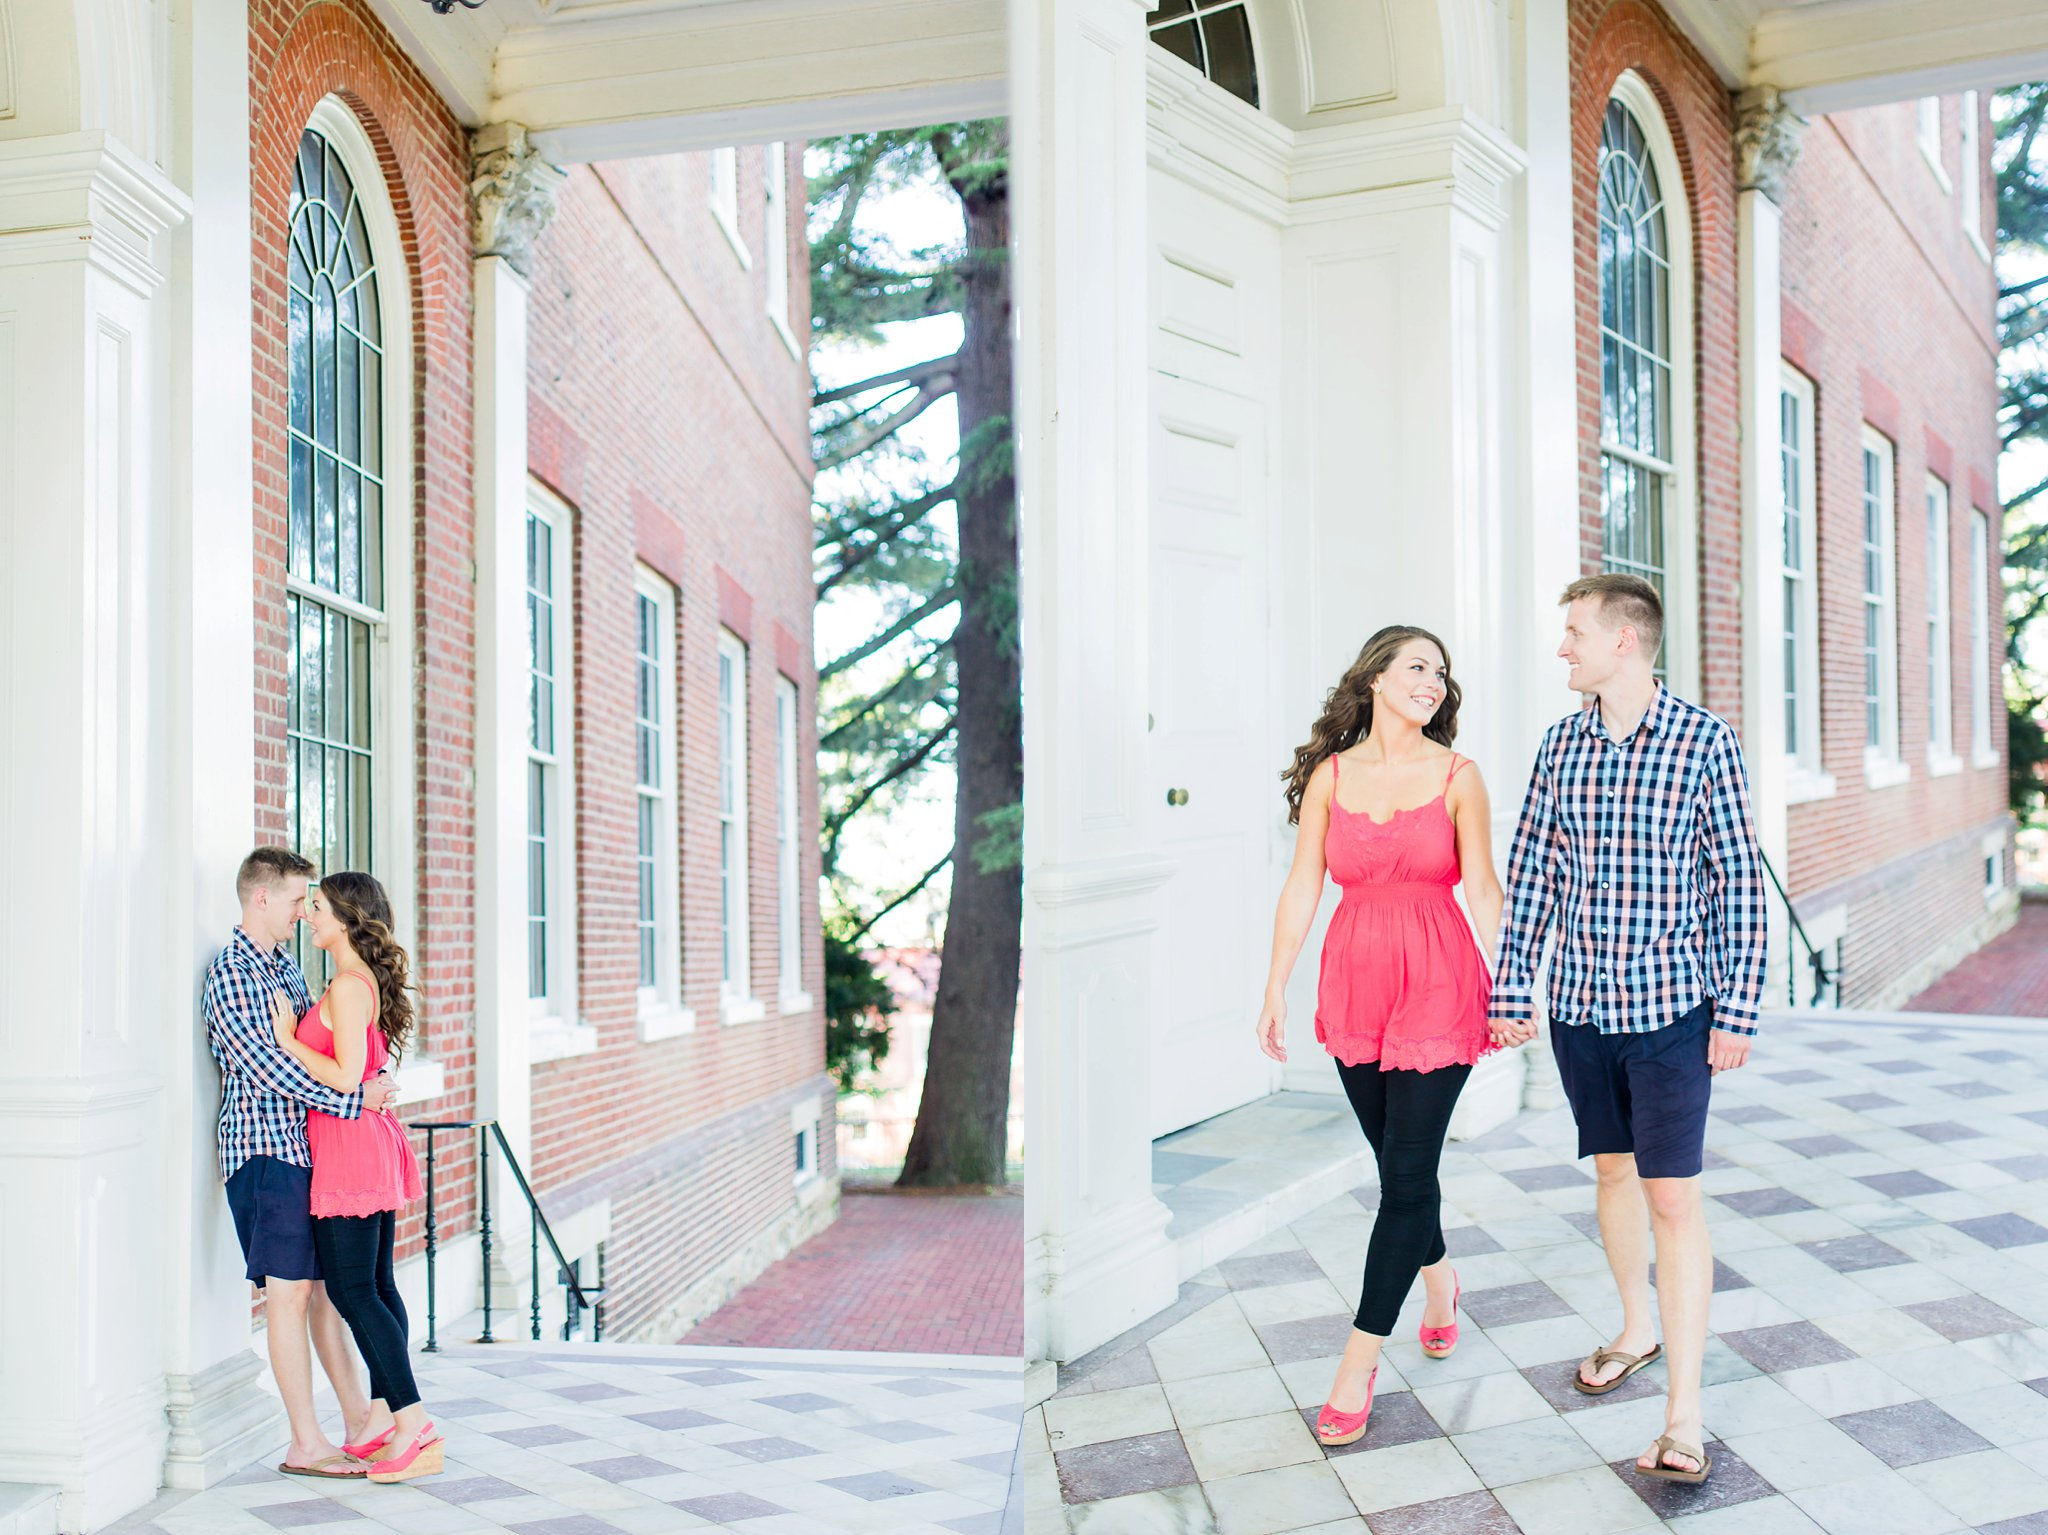 Downtown Annapolis Engagement Photos Maryland Wedding Photographer Megan Kelsey Photography Sam & Angela-37.jpg